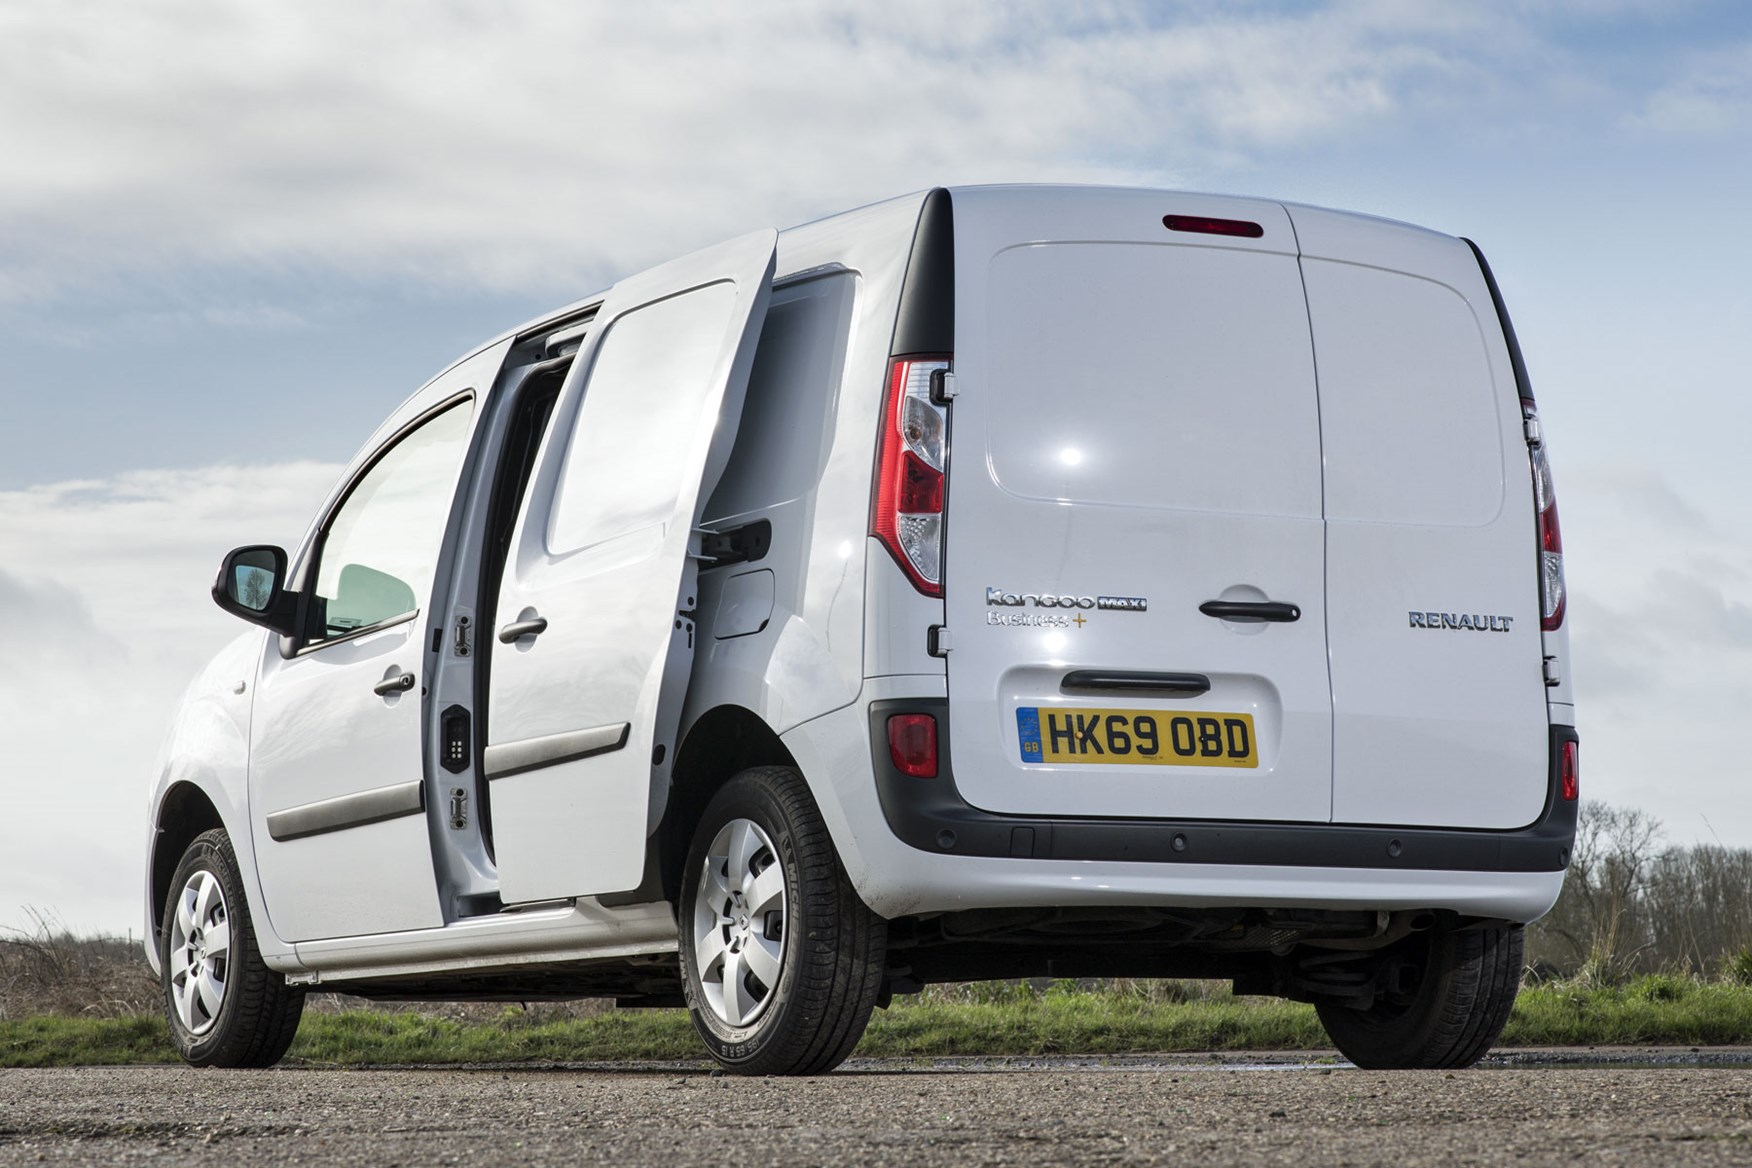 Renault Kangoo van review - rear view with sliding side door open, 2020